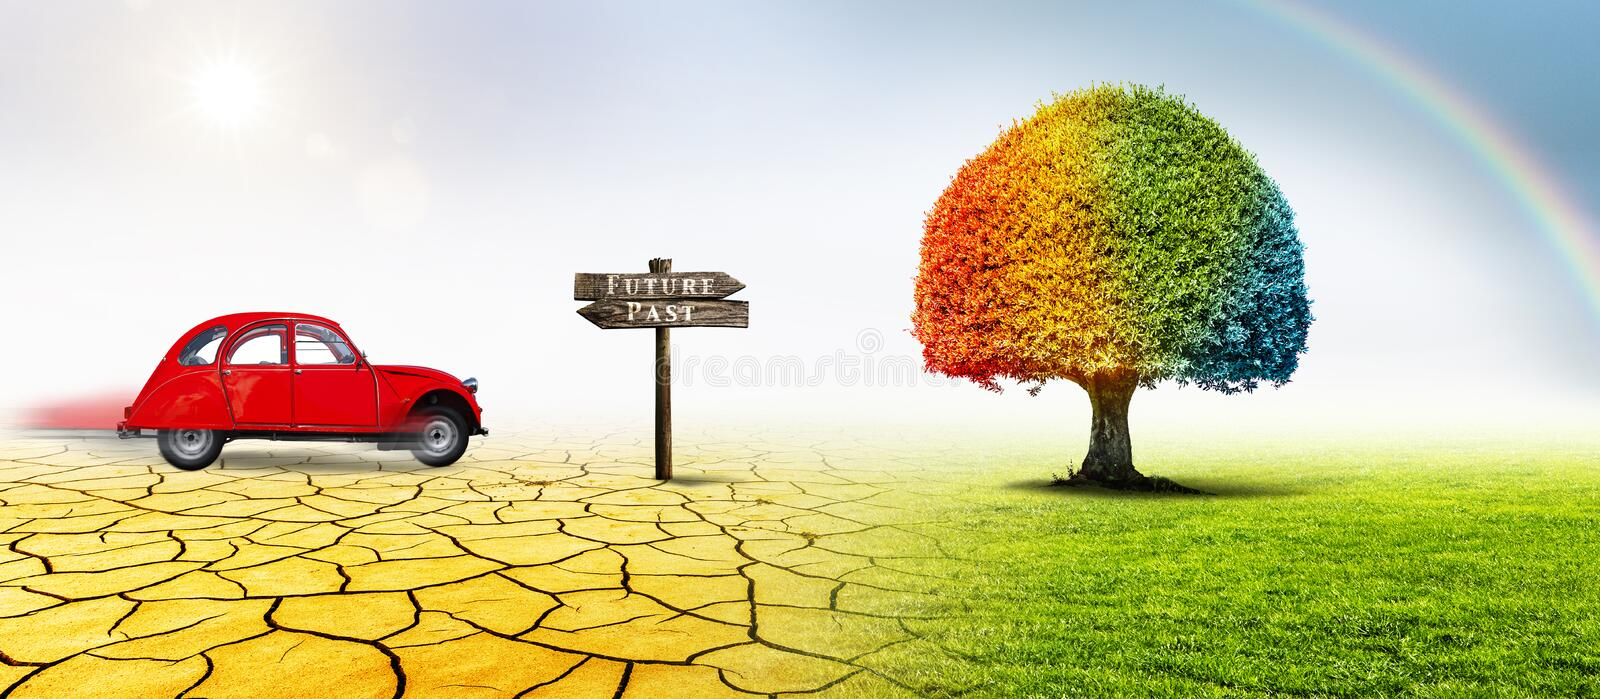 Tree and old vehicle with sign stock image